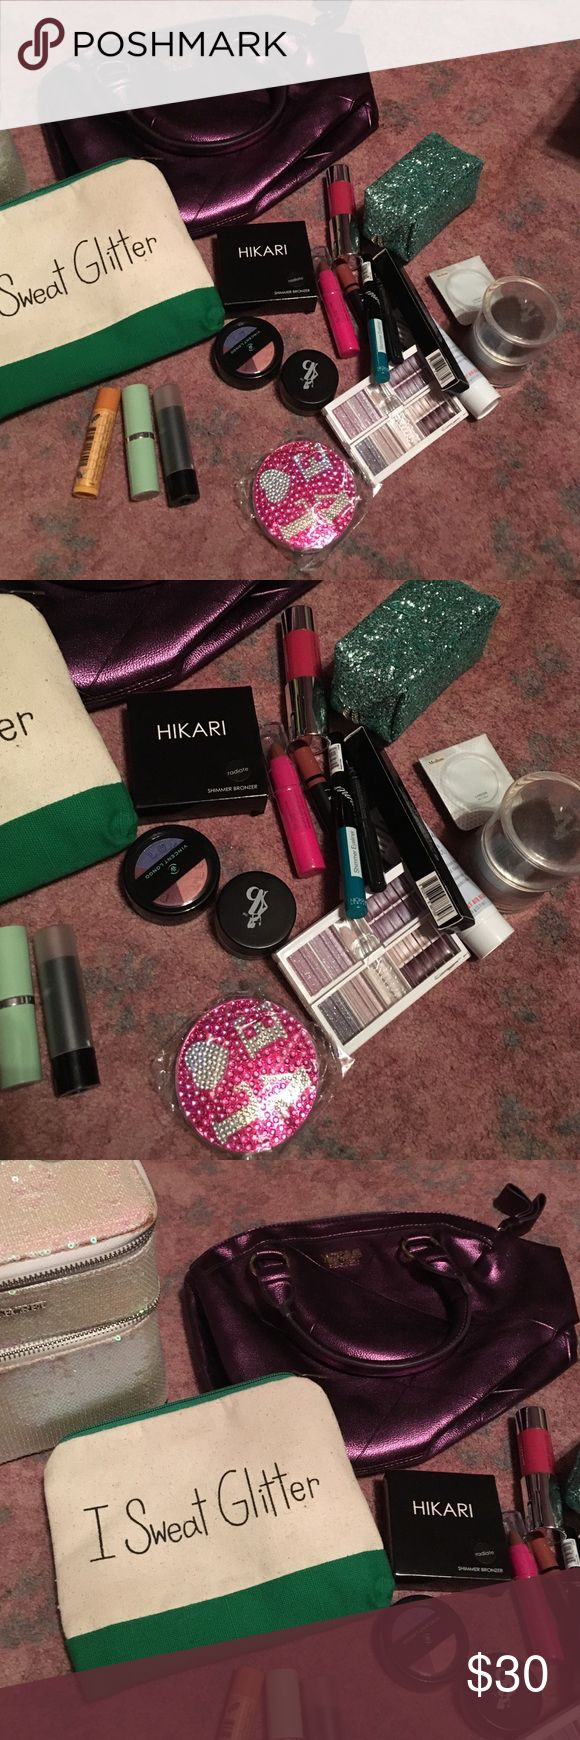 """Makeup Lot!!!! With Victoria Secret Train Case This is a huge makeup lot! You will get a Victoria Secret Train case, $75, a Victoria secret makeup bag, """"I Sweat Glitter"""" bag, a mirror compact(new), a two faced glitter case, and several different makeup items. Some items are new and some have been used. What u see is what you get. I always throw in some extras!!! Need this stuff gone!!! Victoria's Secret Makeup"""